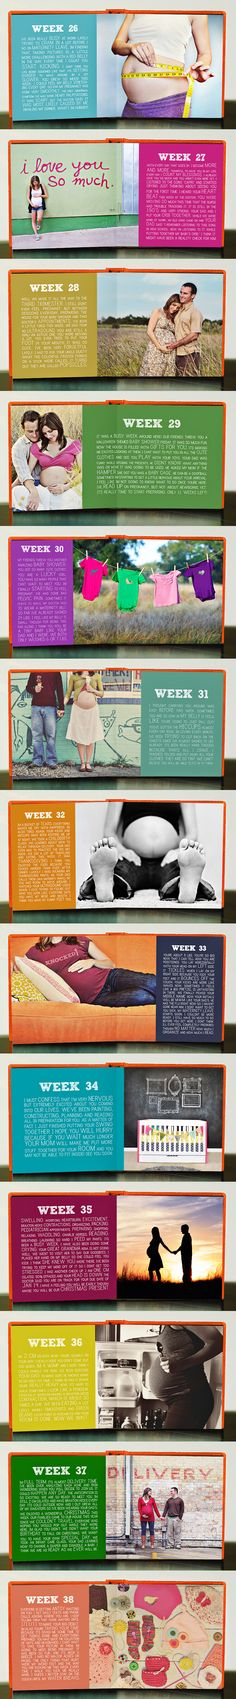 Since I missed the whole pregnancy thing, I'd love to document her week by week progress.